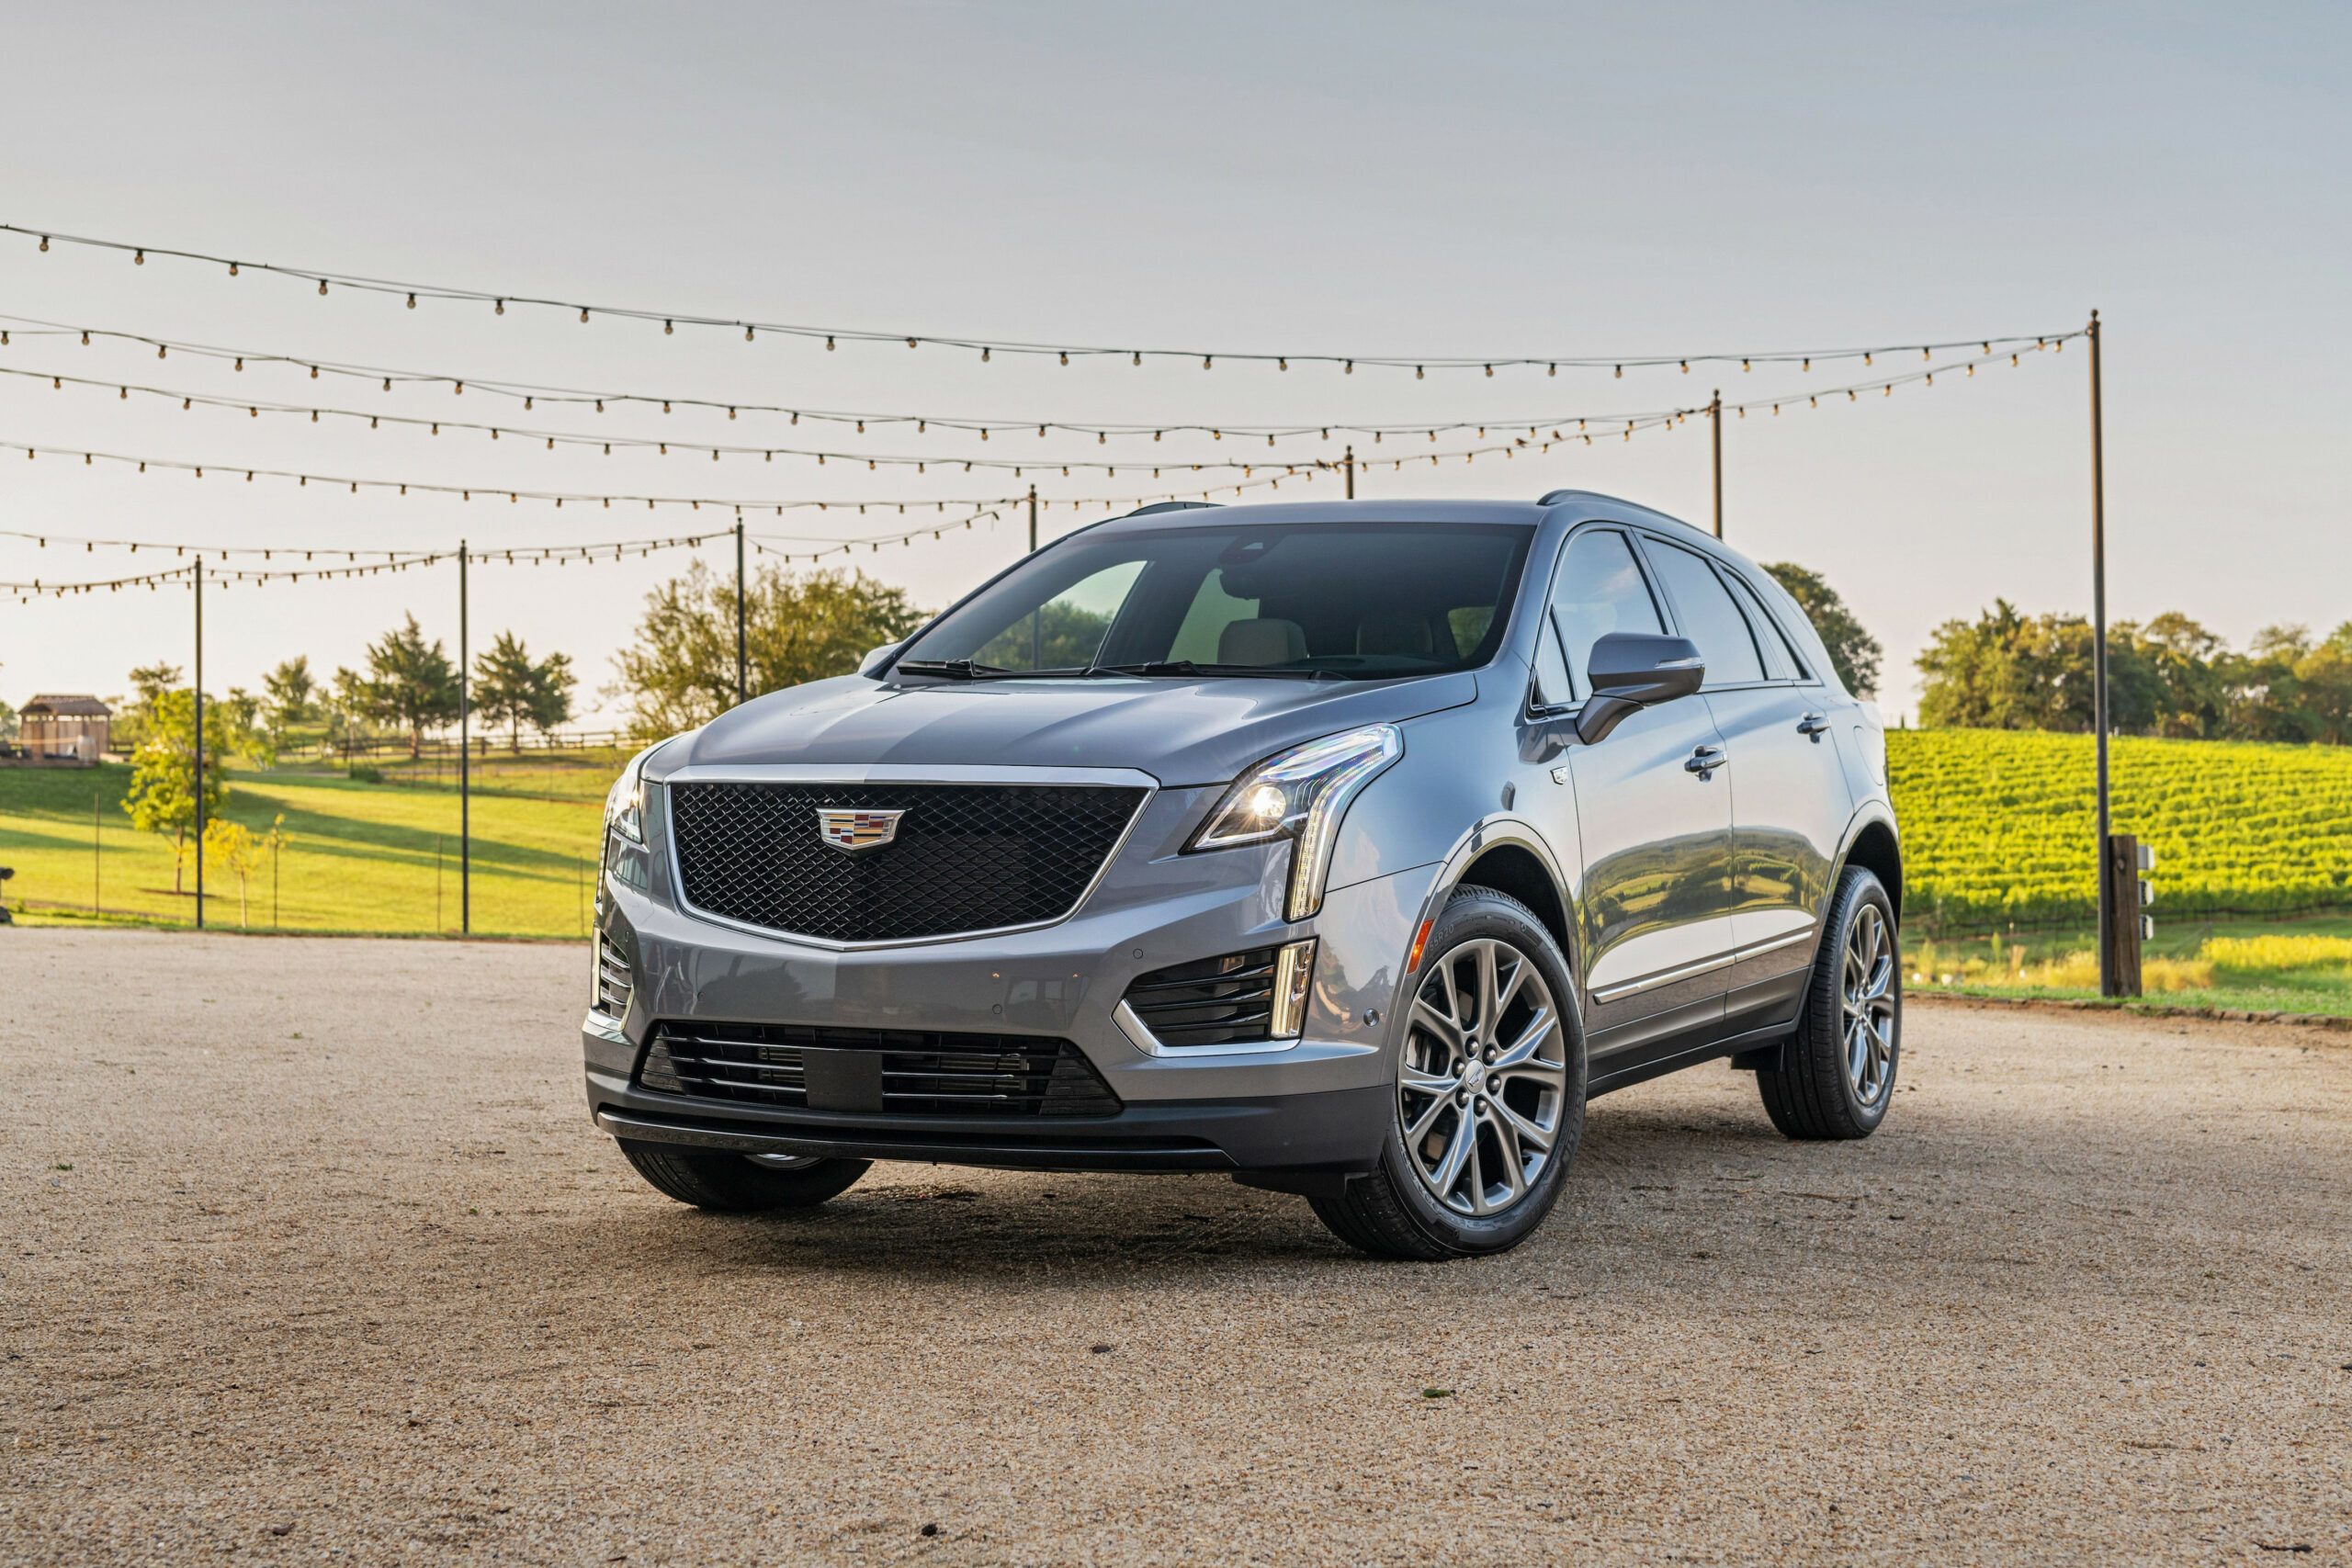 10 Cadillac XT10 Review, Pricing, and Specs - 2020 cadillac suv price